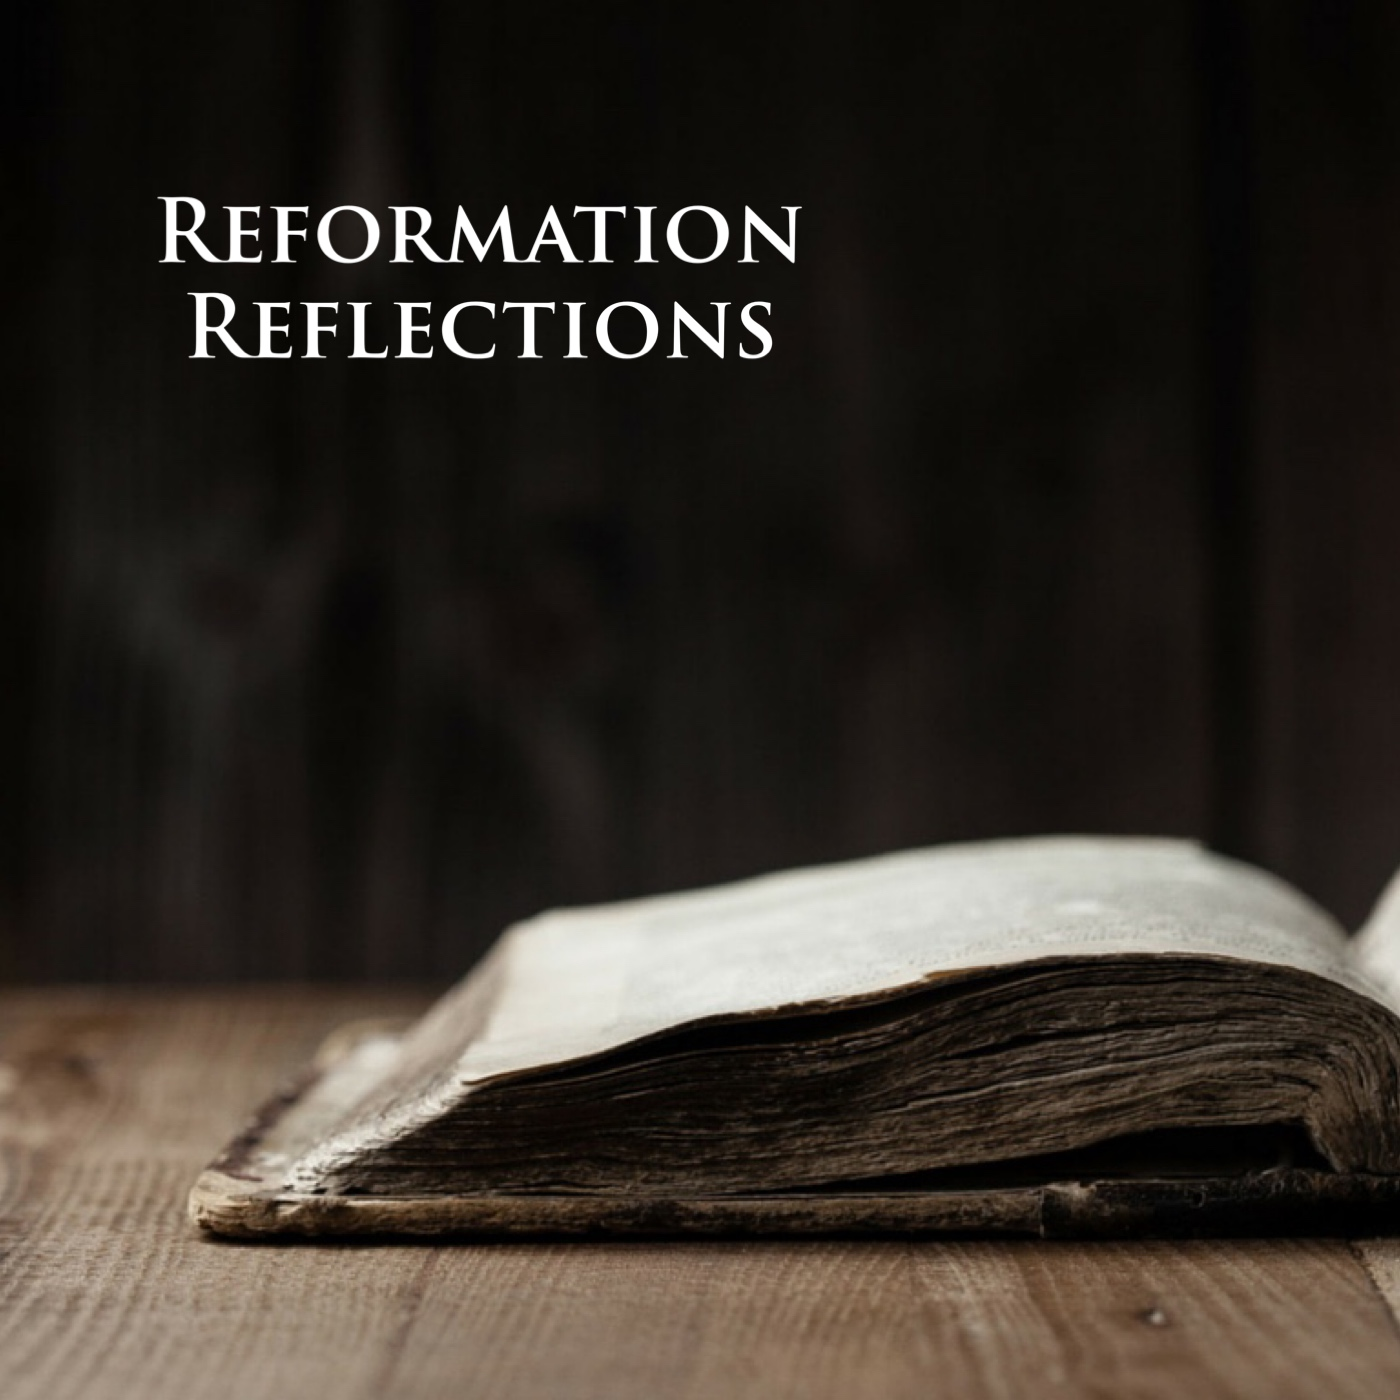 Reformation Reflections